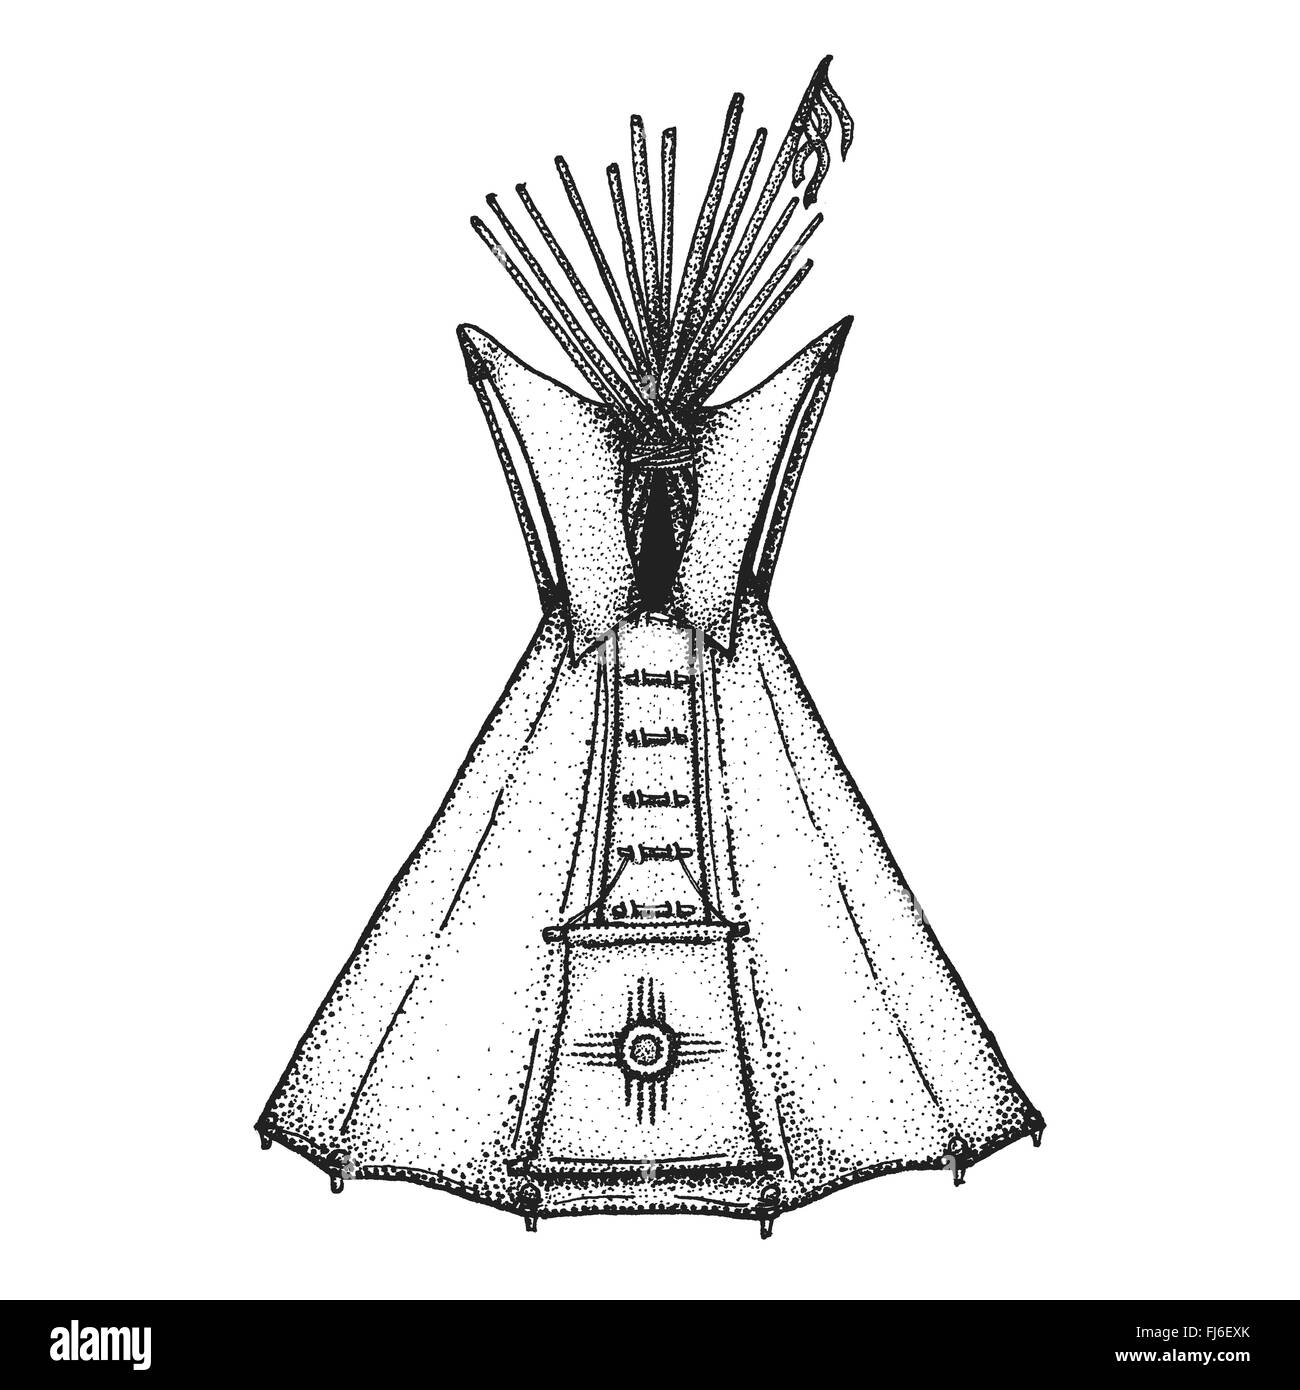 vector black color monochrome dotted art retro tattoo gravure style native american conical tent teepee housing ethnic sun sign  sc 1 st  Alamy : tent art - memphite.com